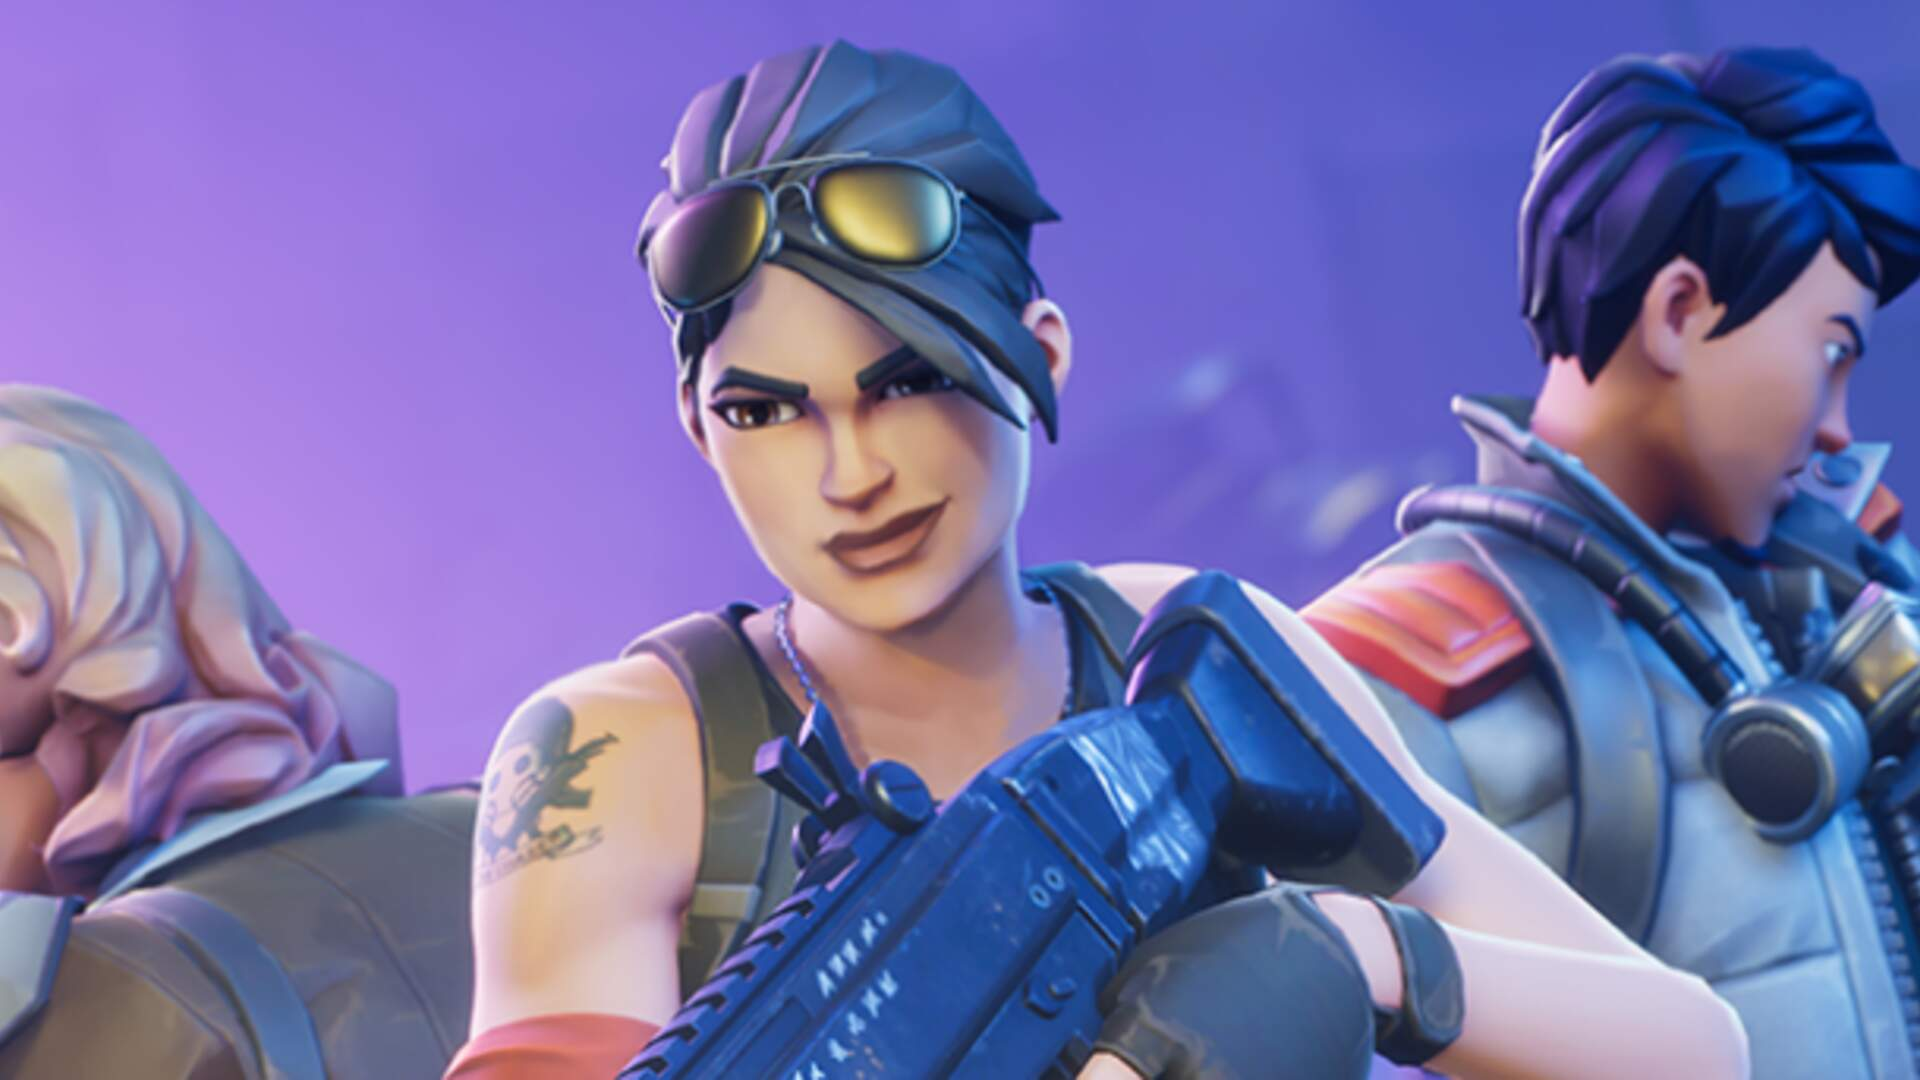 Microsoft and Epic Want Fortnite Crossplay Between Xbox and PS4, Sony Remains Unmoved